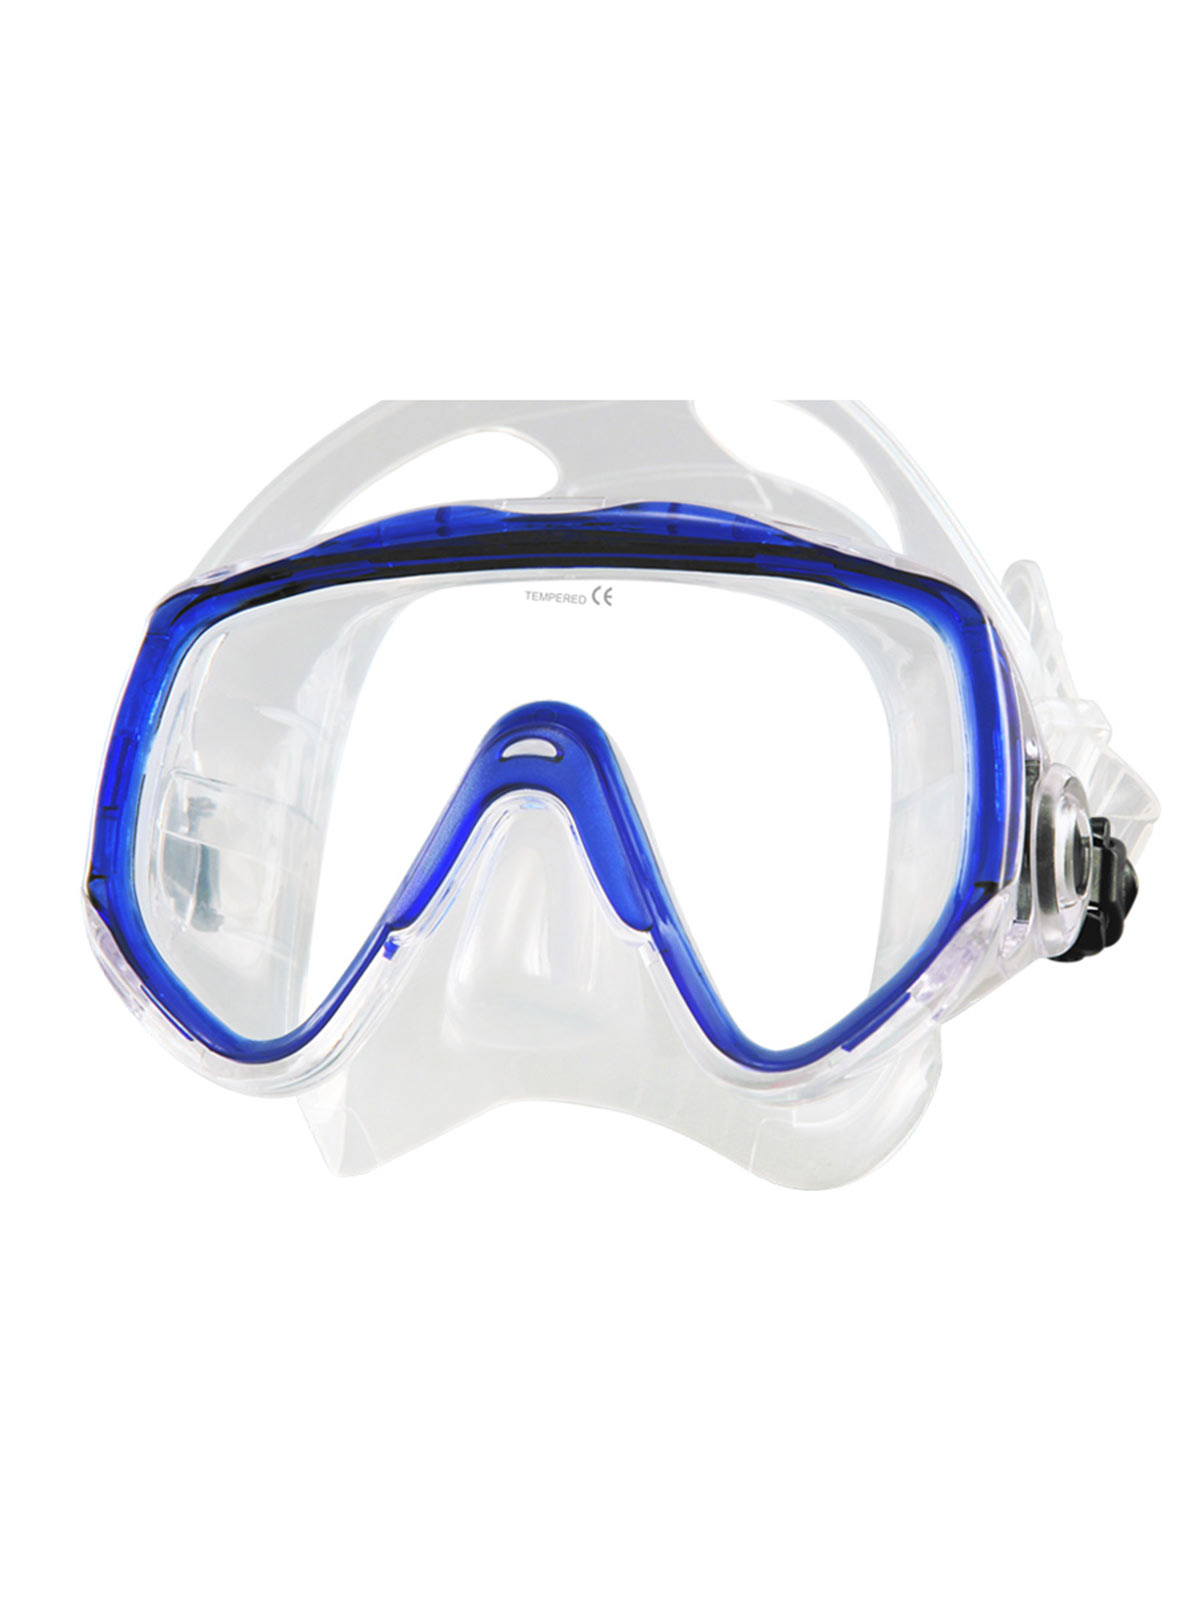 Tilos Premium Titanica Scuba & Snorkel Mask for Large Faces by Tilos